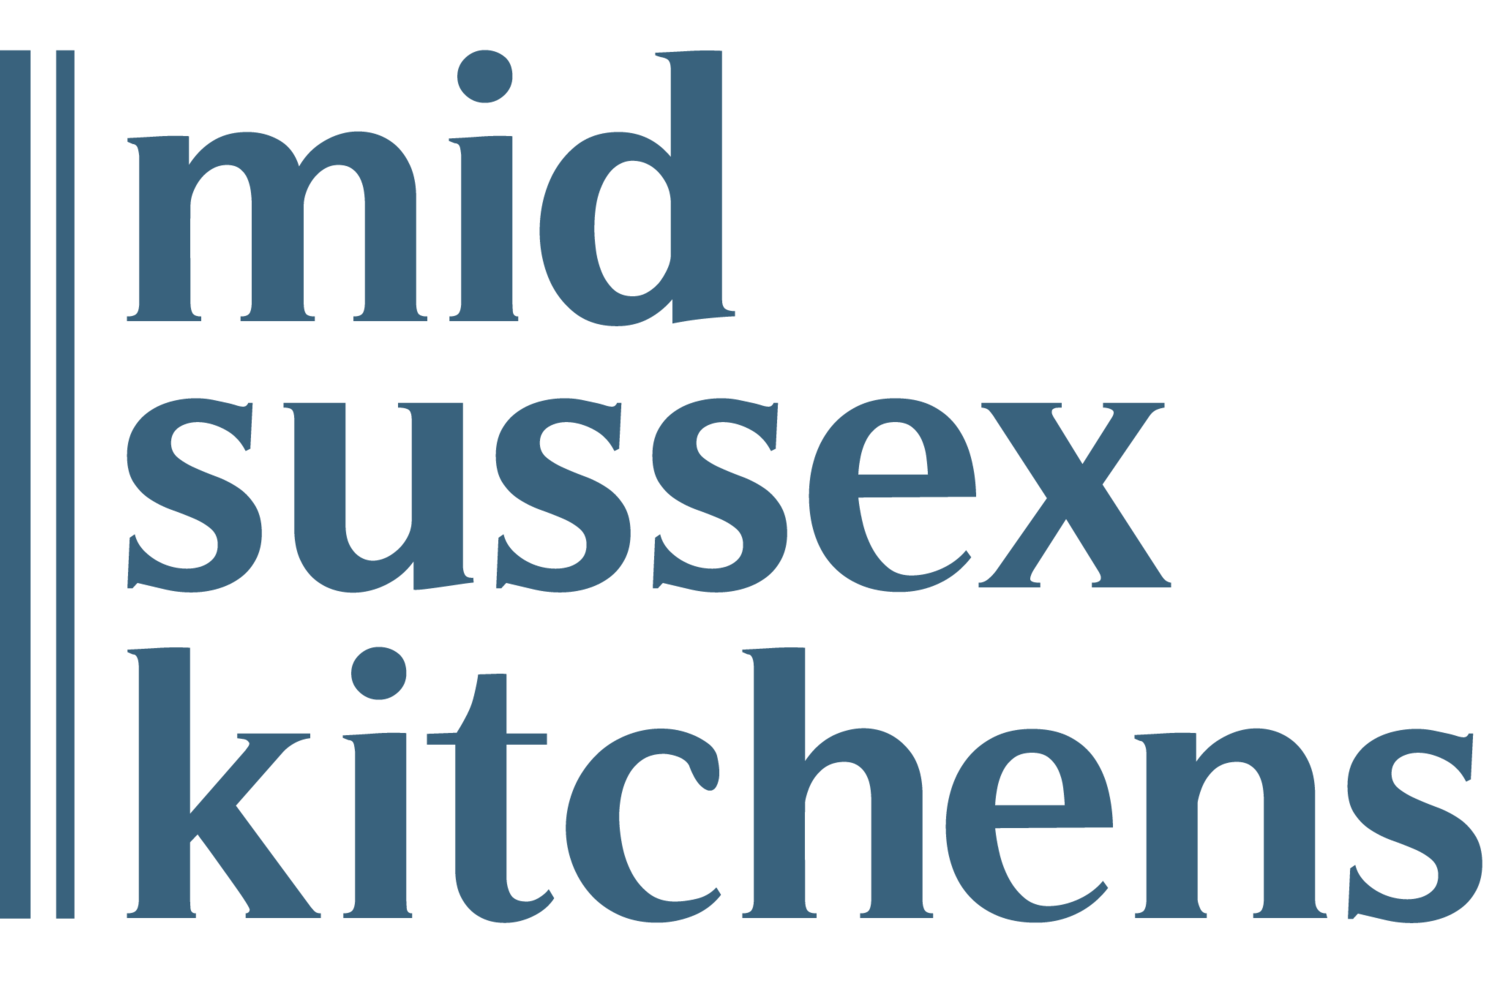 Mid Sussex Kitchens